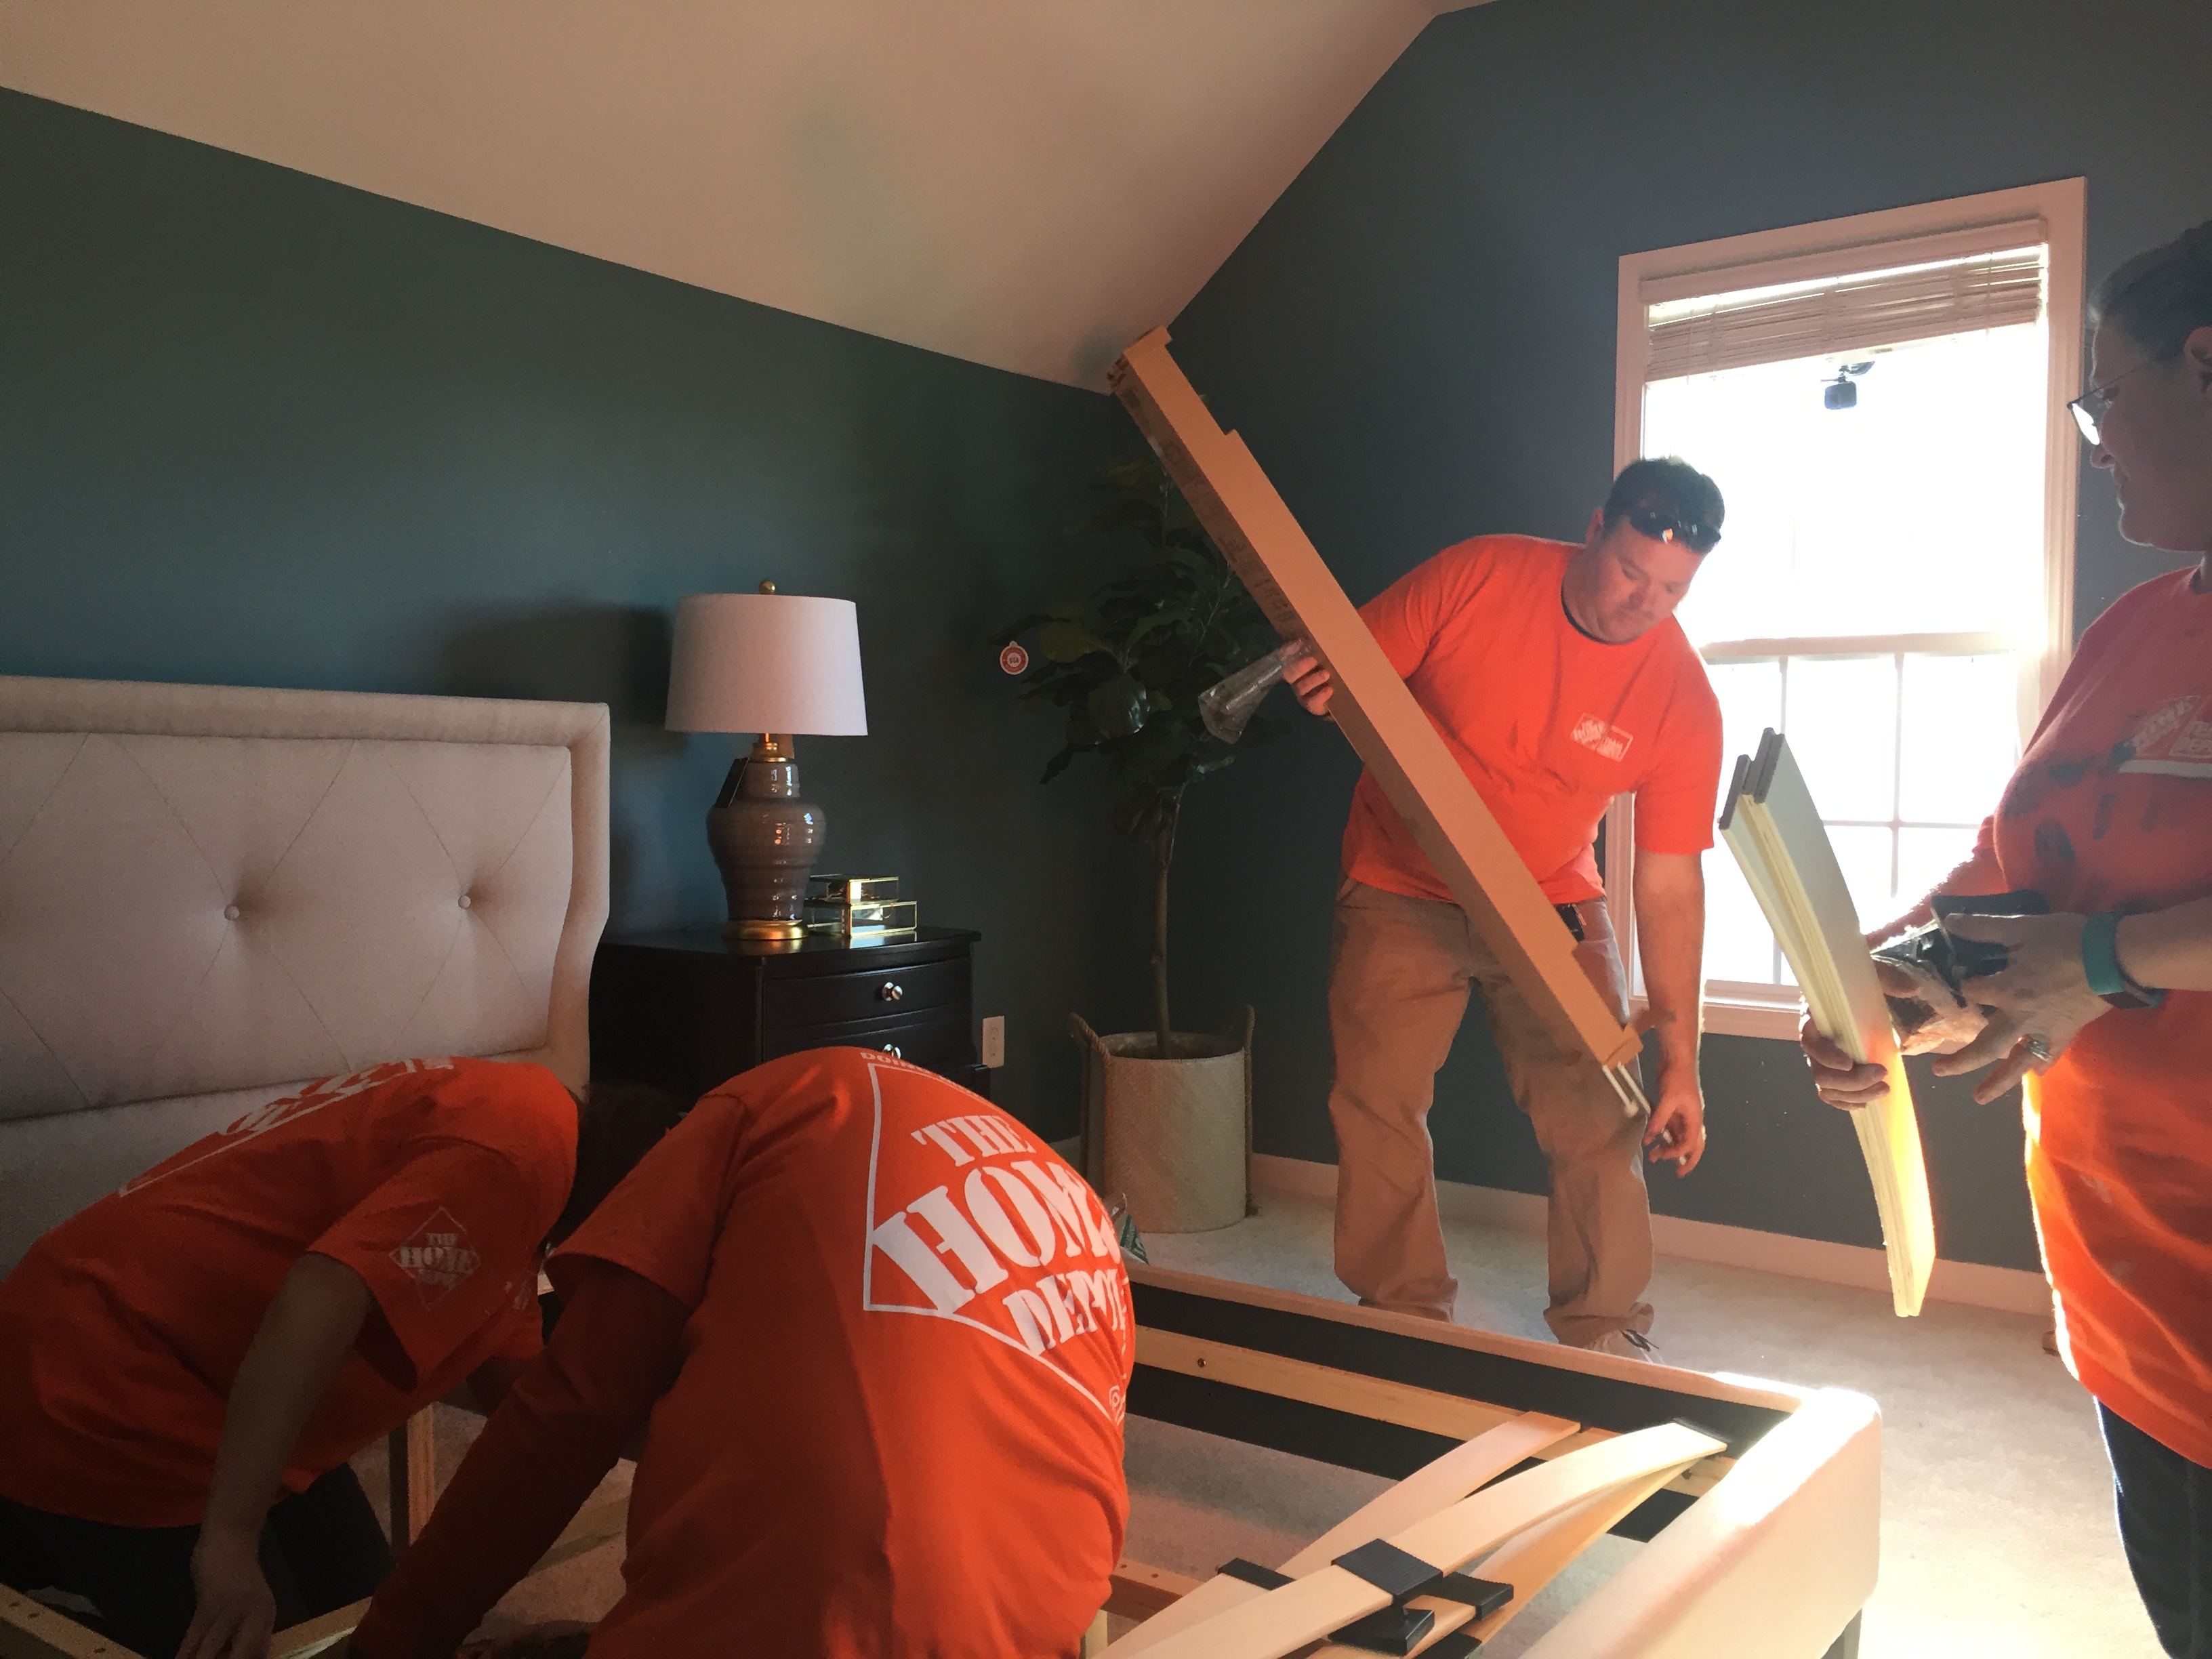 Team Depot builds bed in home makeover for veteran's widow.